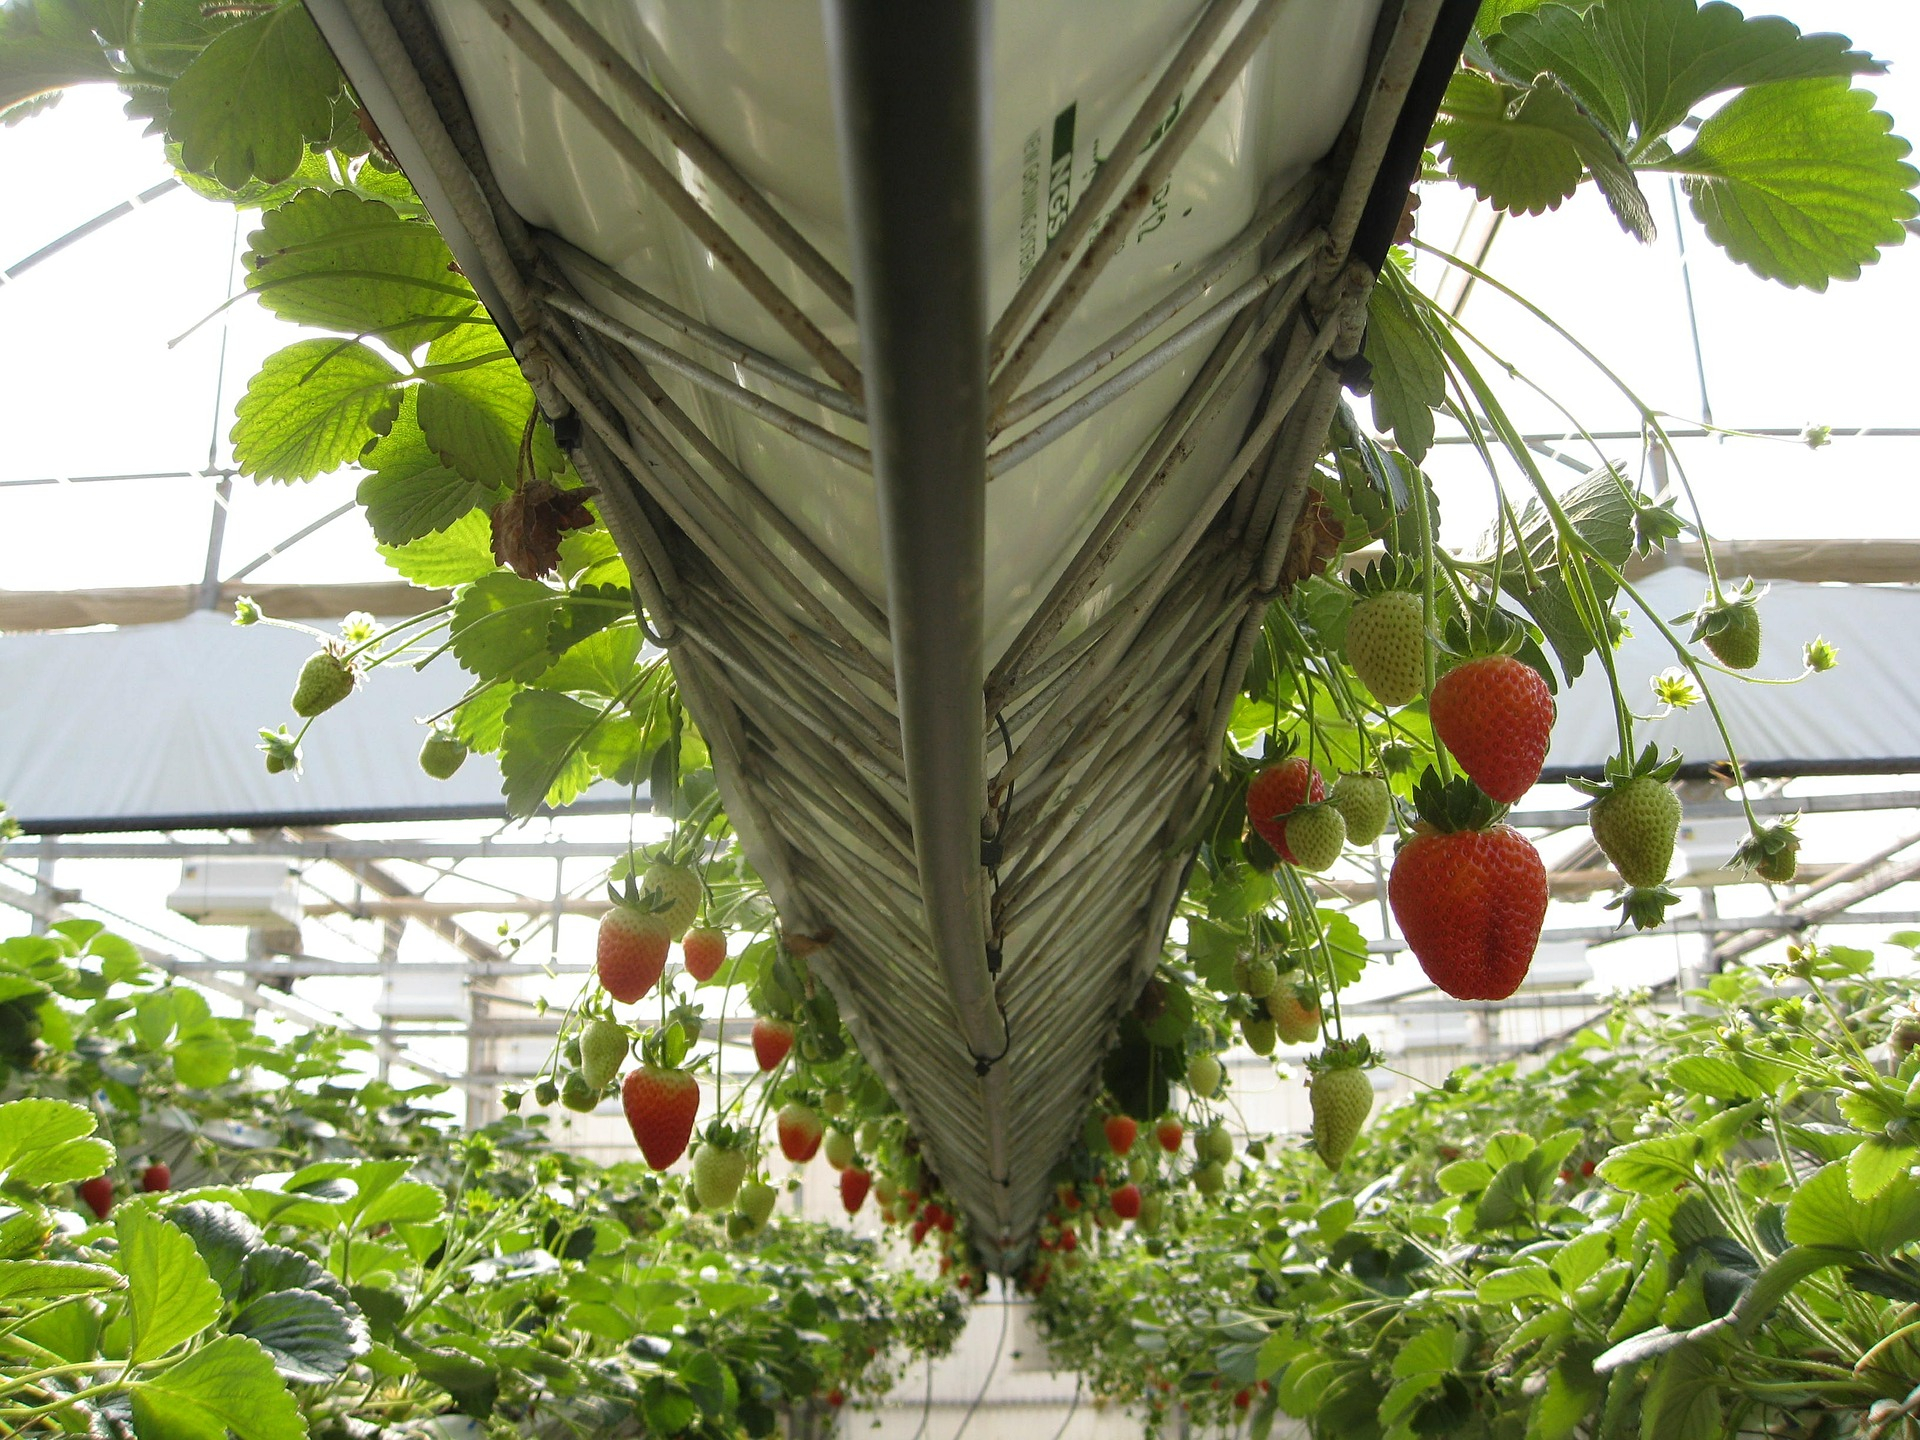 How A Small Greenhouse Can Grow Fruits In Your Garden All Year Round